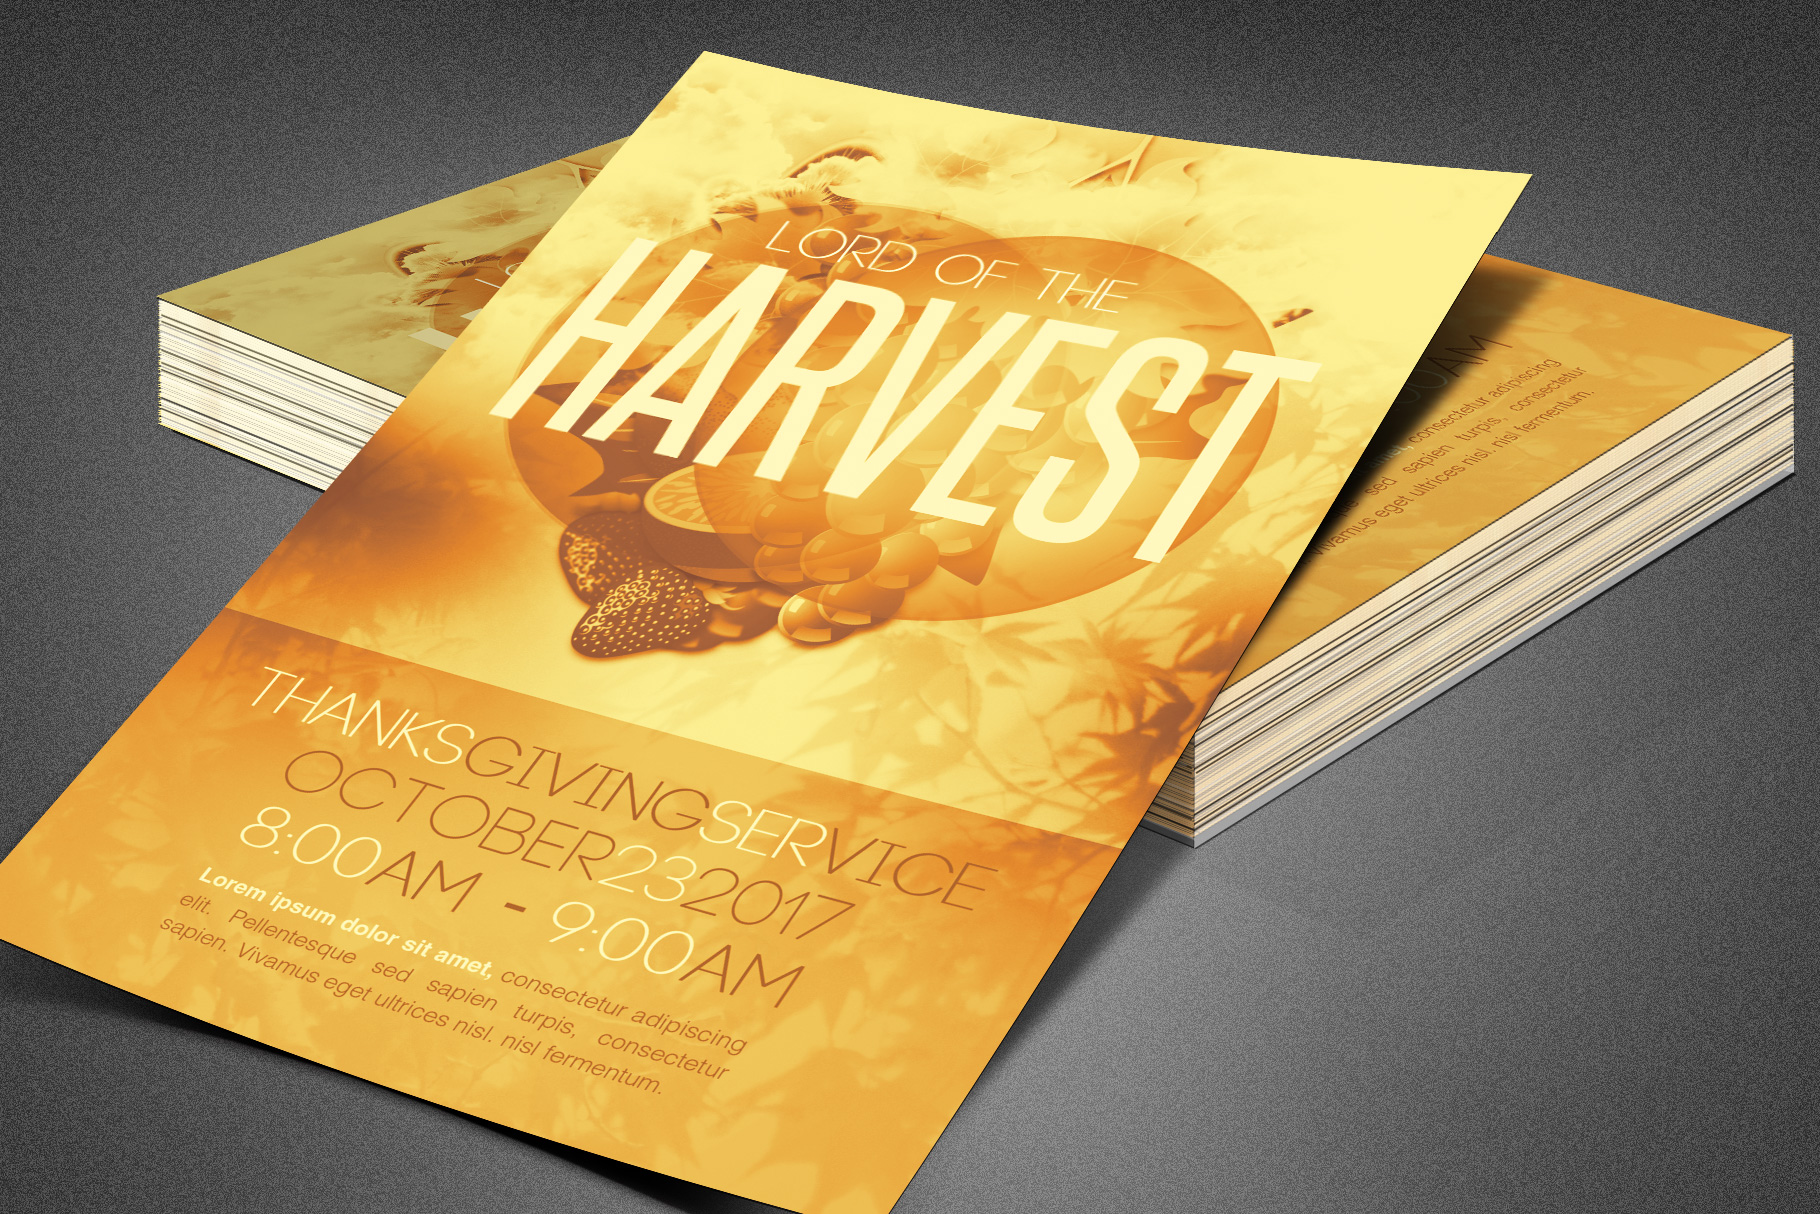 Lord of the Harvest Church Flyer example image 3